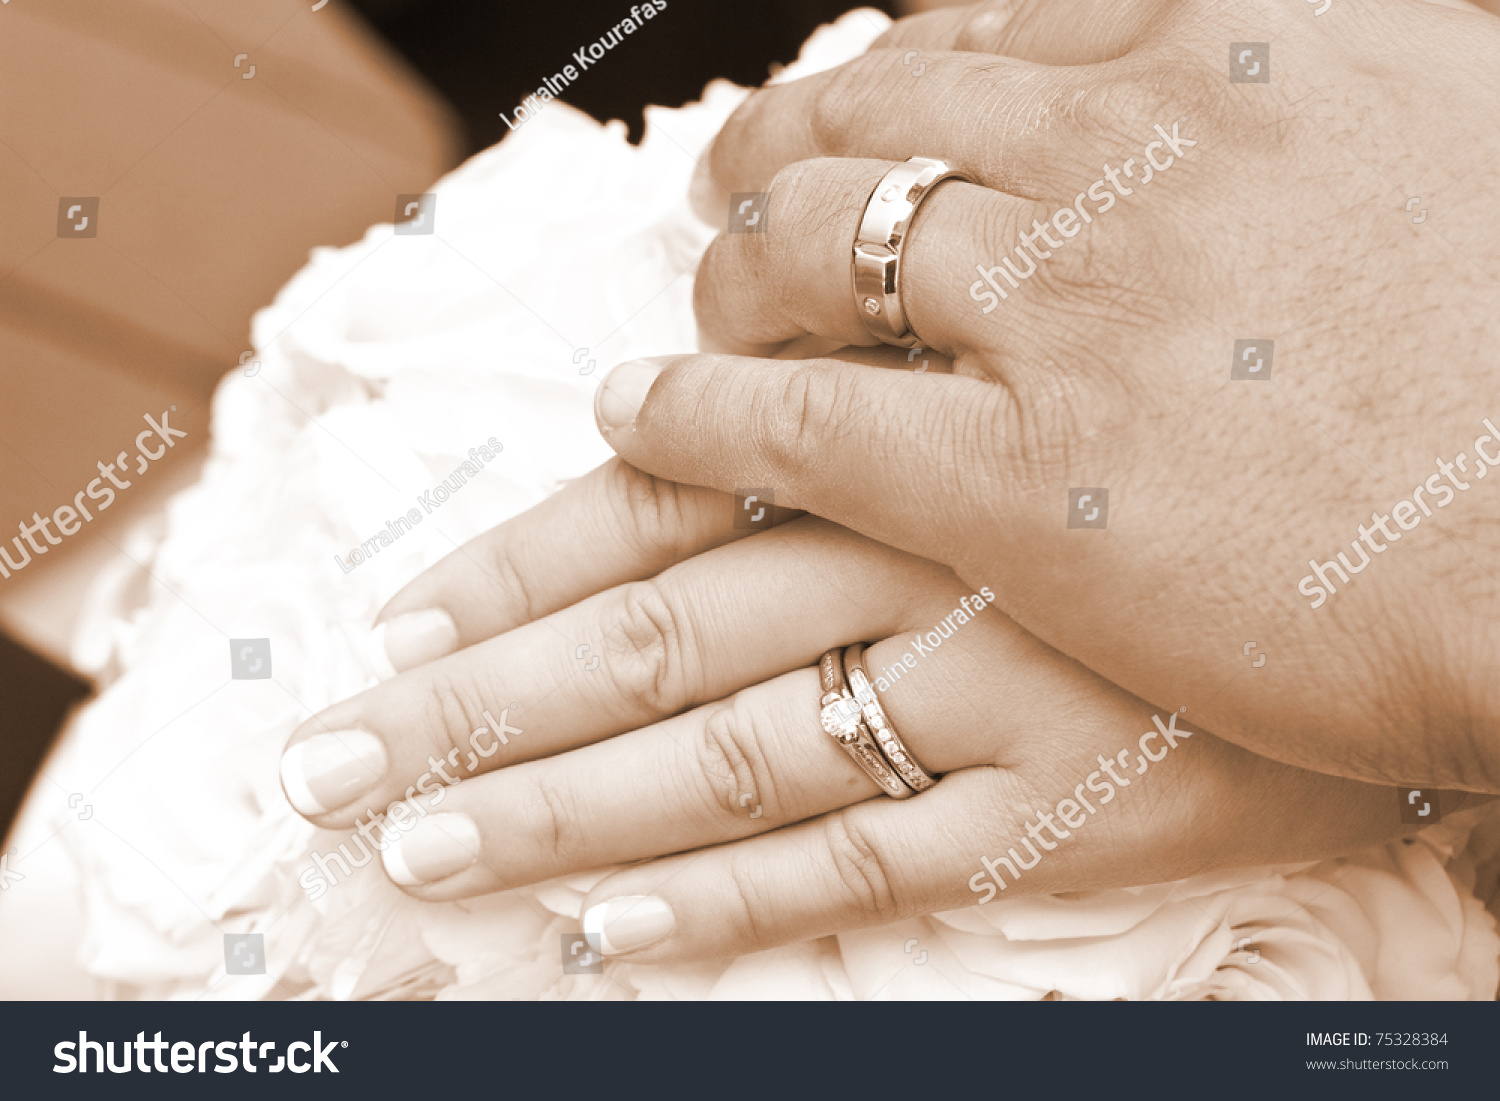 Wedding Day Bride Grooms Hands Rings Stock Photo 75328384